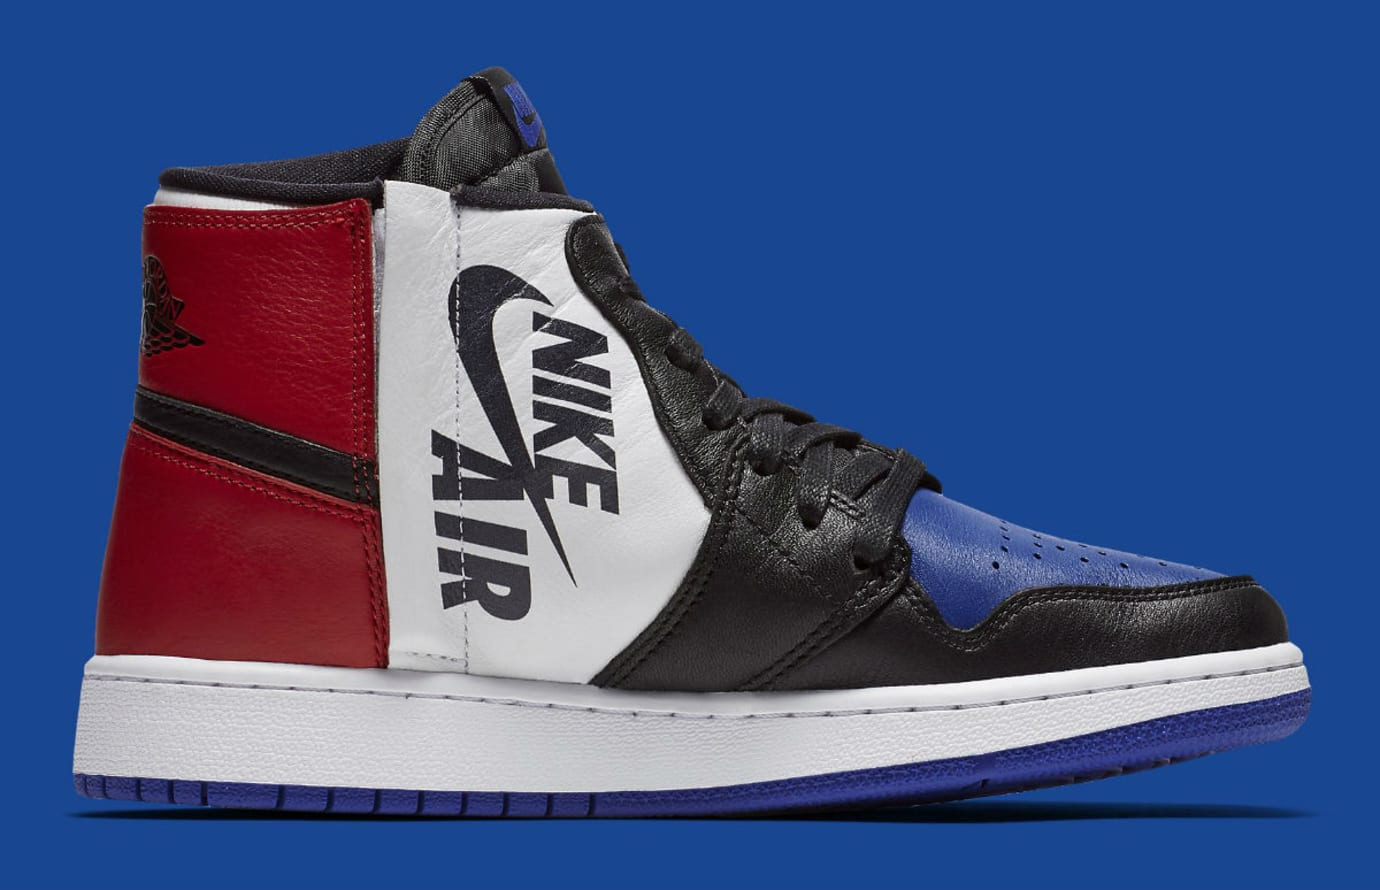 Air Jordan 1 Rebel XX Top 3 Release Date AT4151-001 Medial 8c461376f